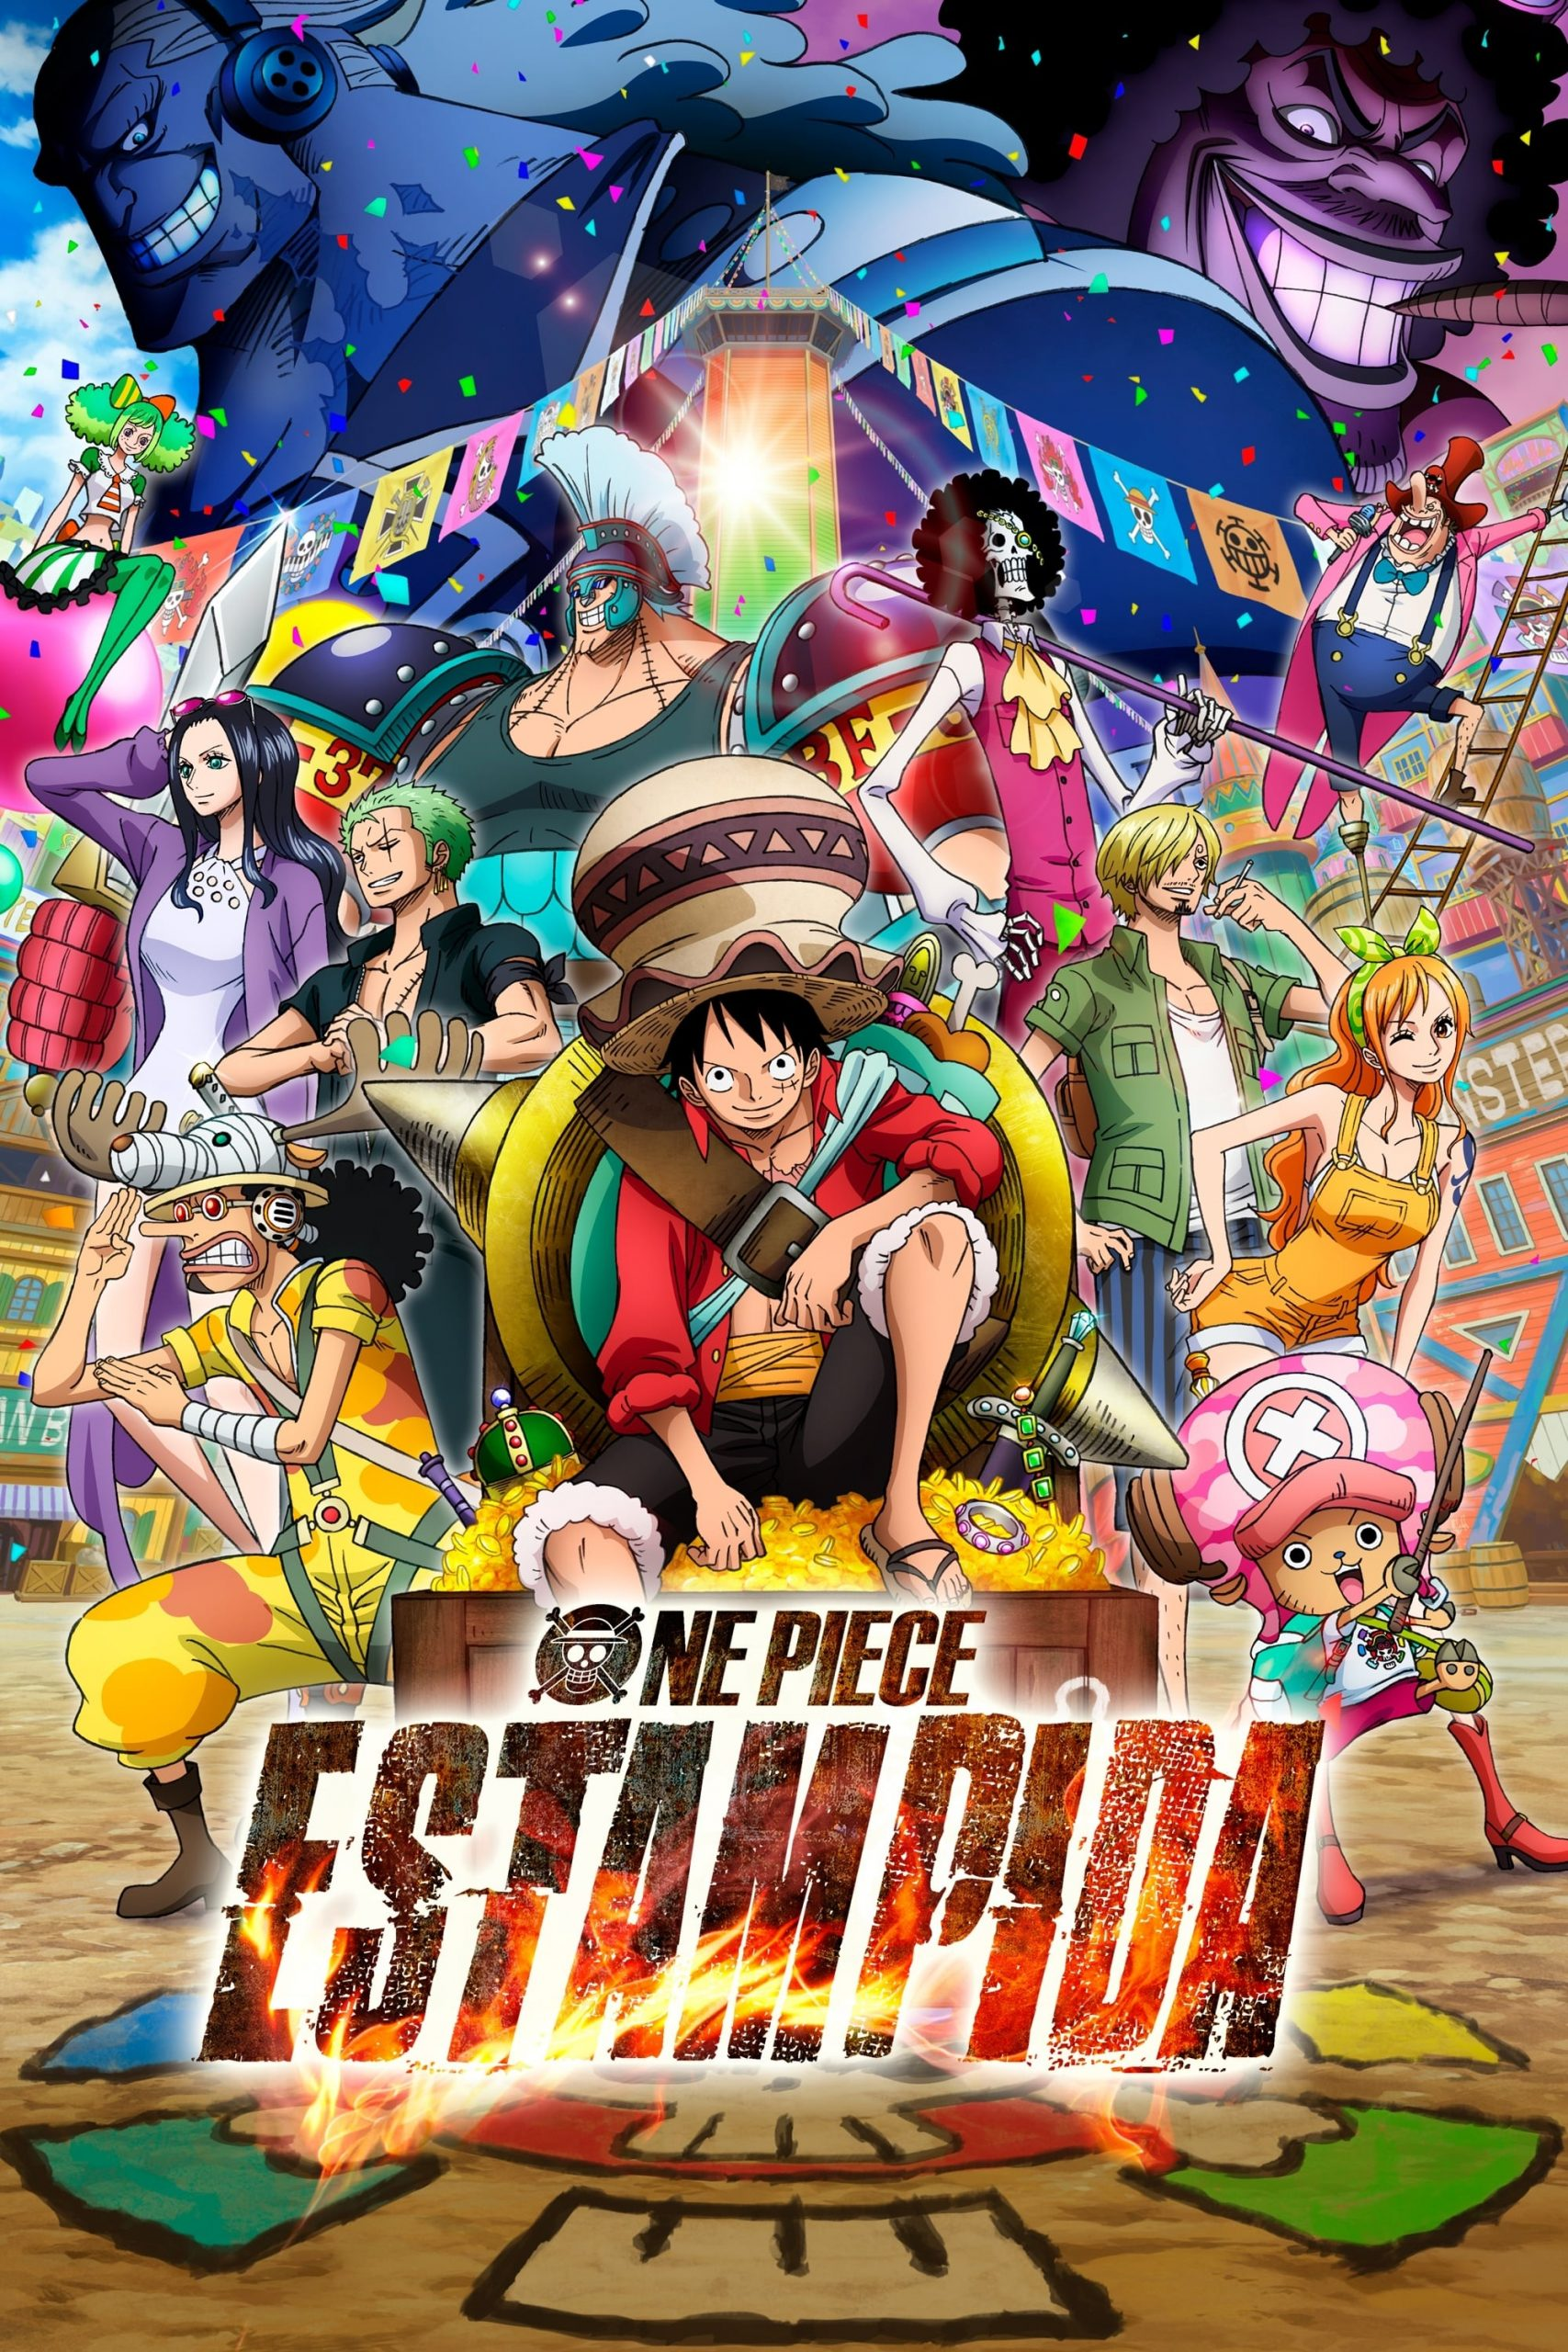 thumb One Piece: Estampida